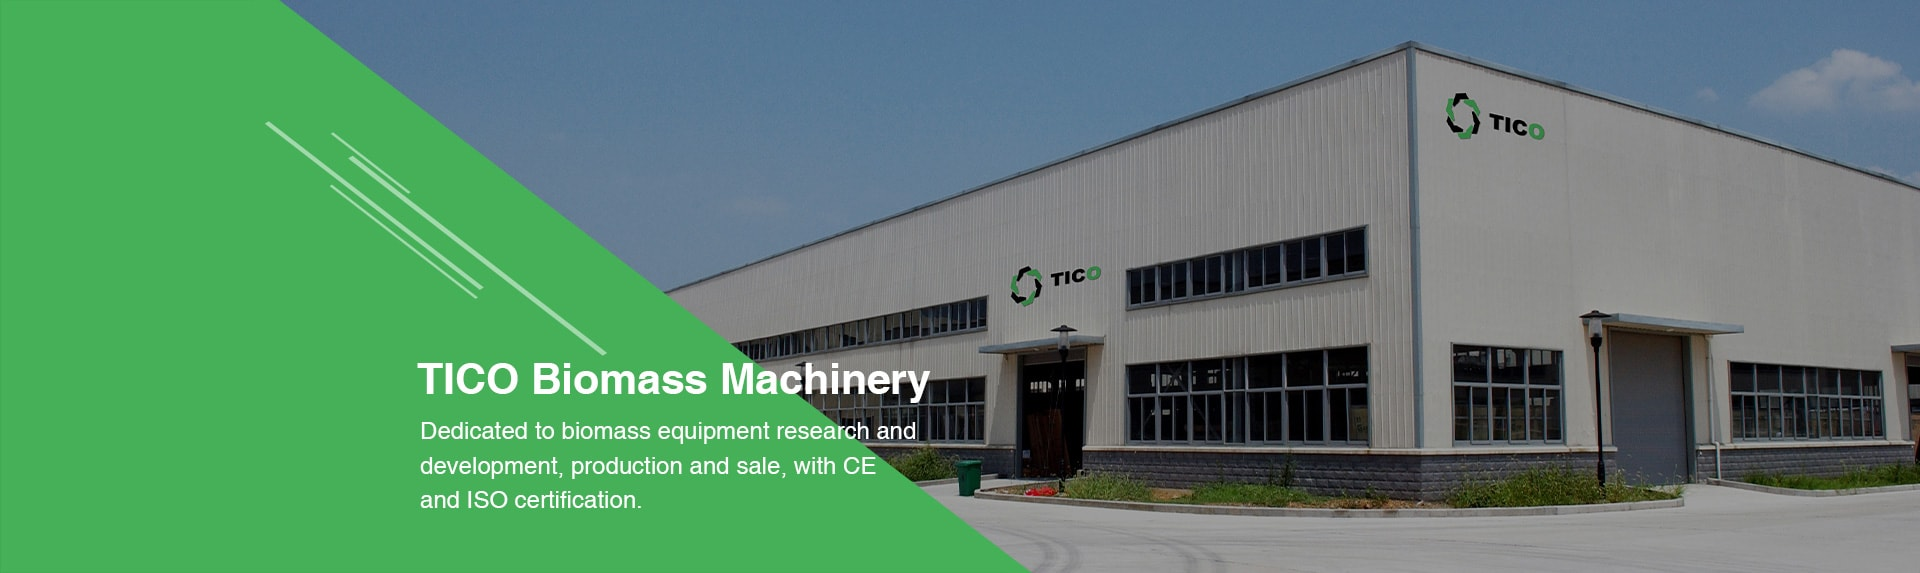 professional biomass machinery manufacture